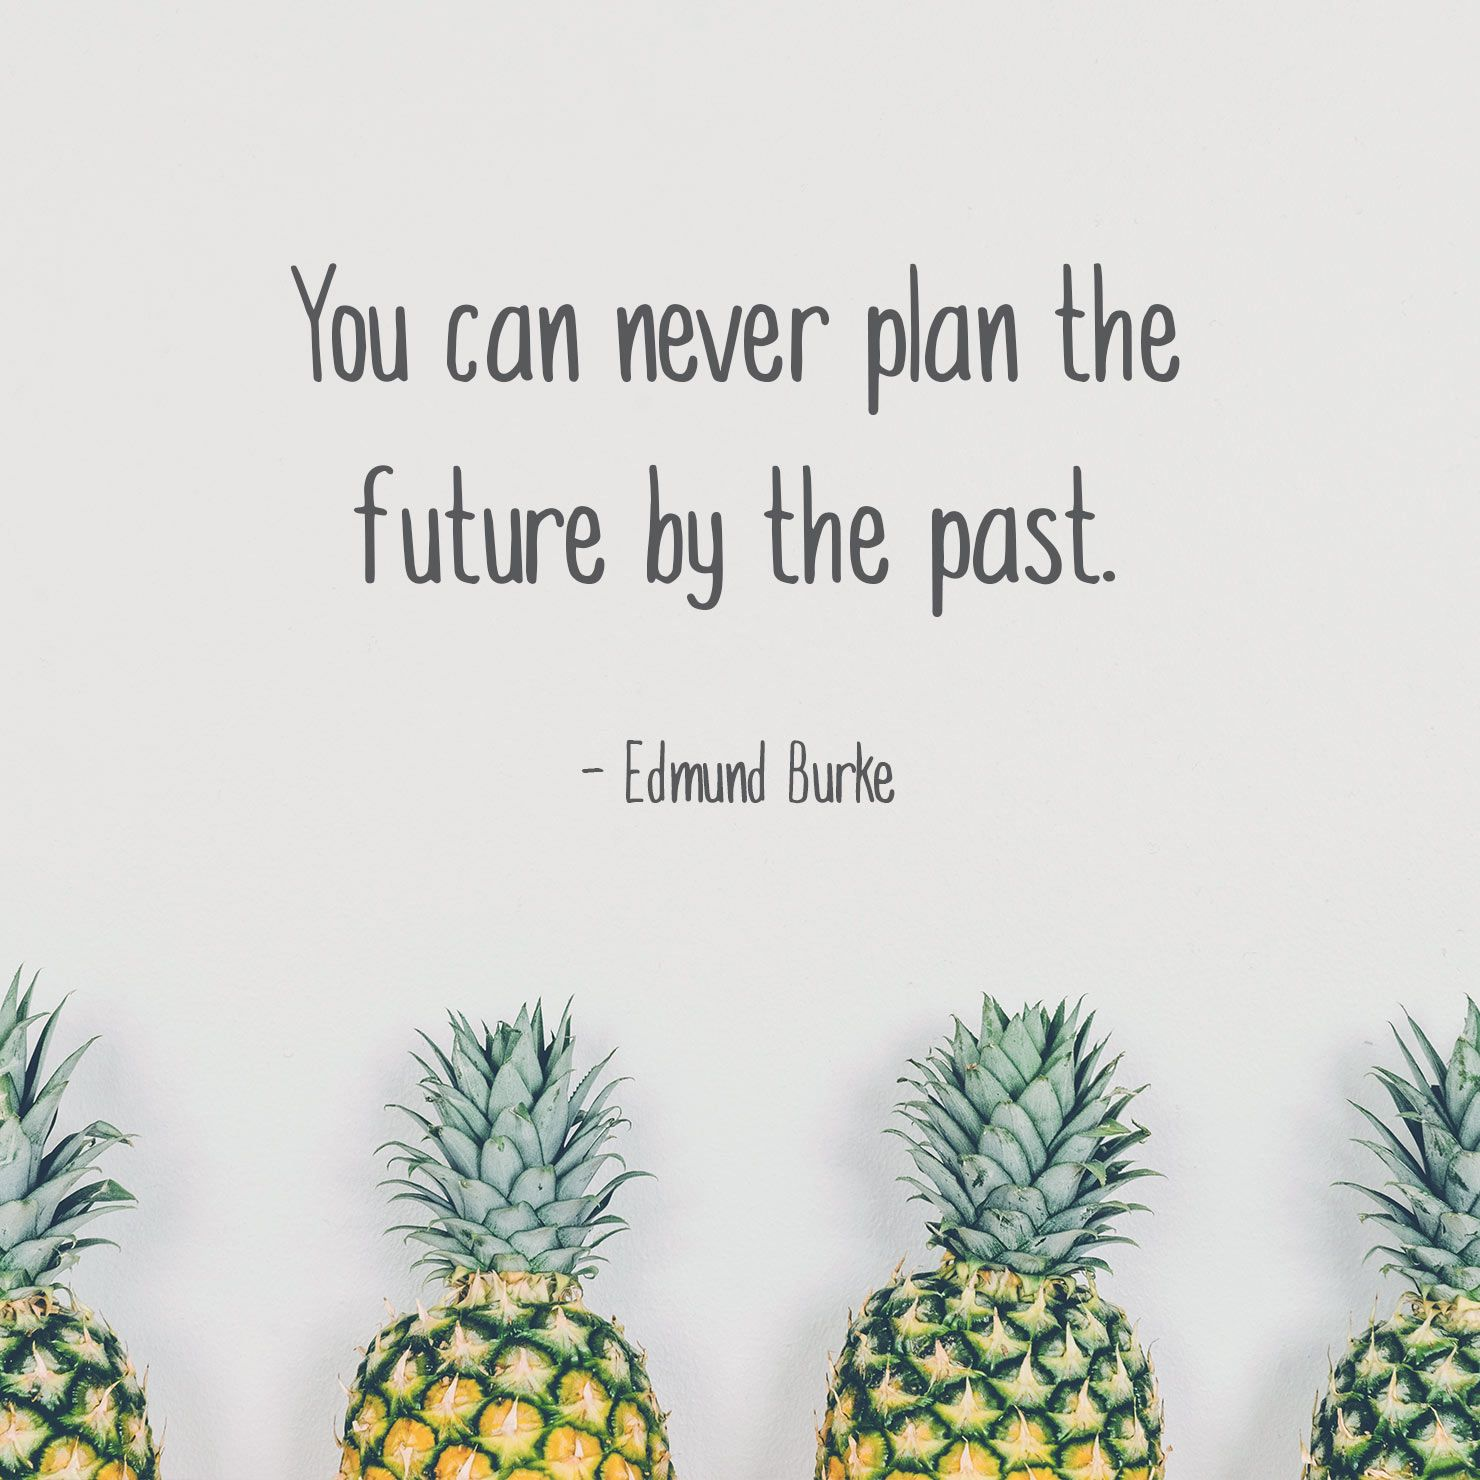 100 Graduation Quotes And Sayings Shutterfly Graduation Quotes Education Quotes Inspirational Education Quotes For Teachers